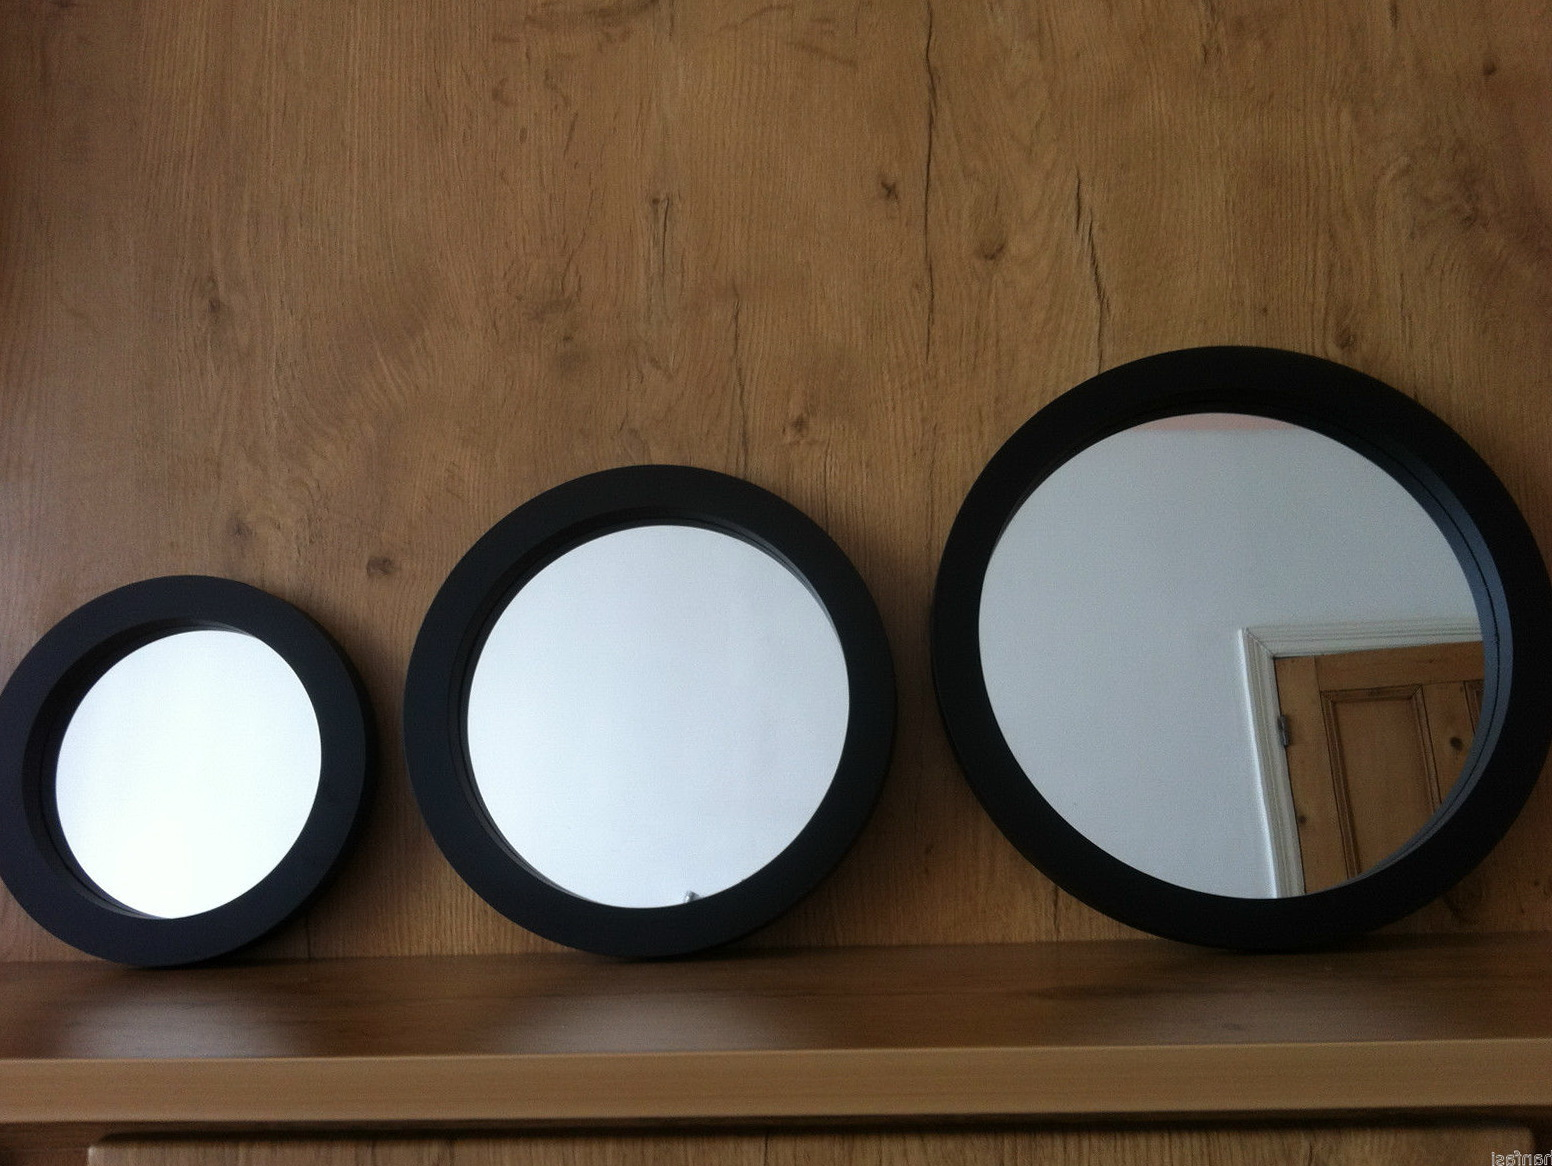 set of 3 round wall mirrors home design ideas. Black Bedroom Furniture Sets. Home Design Ideas